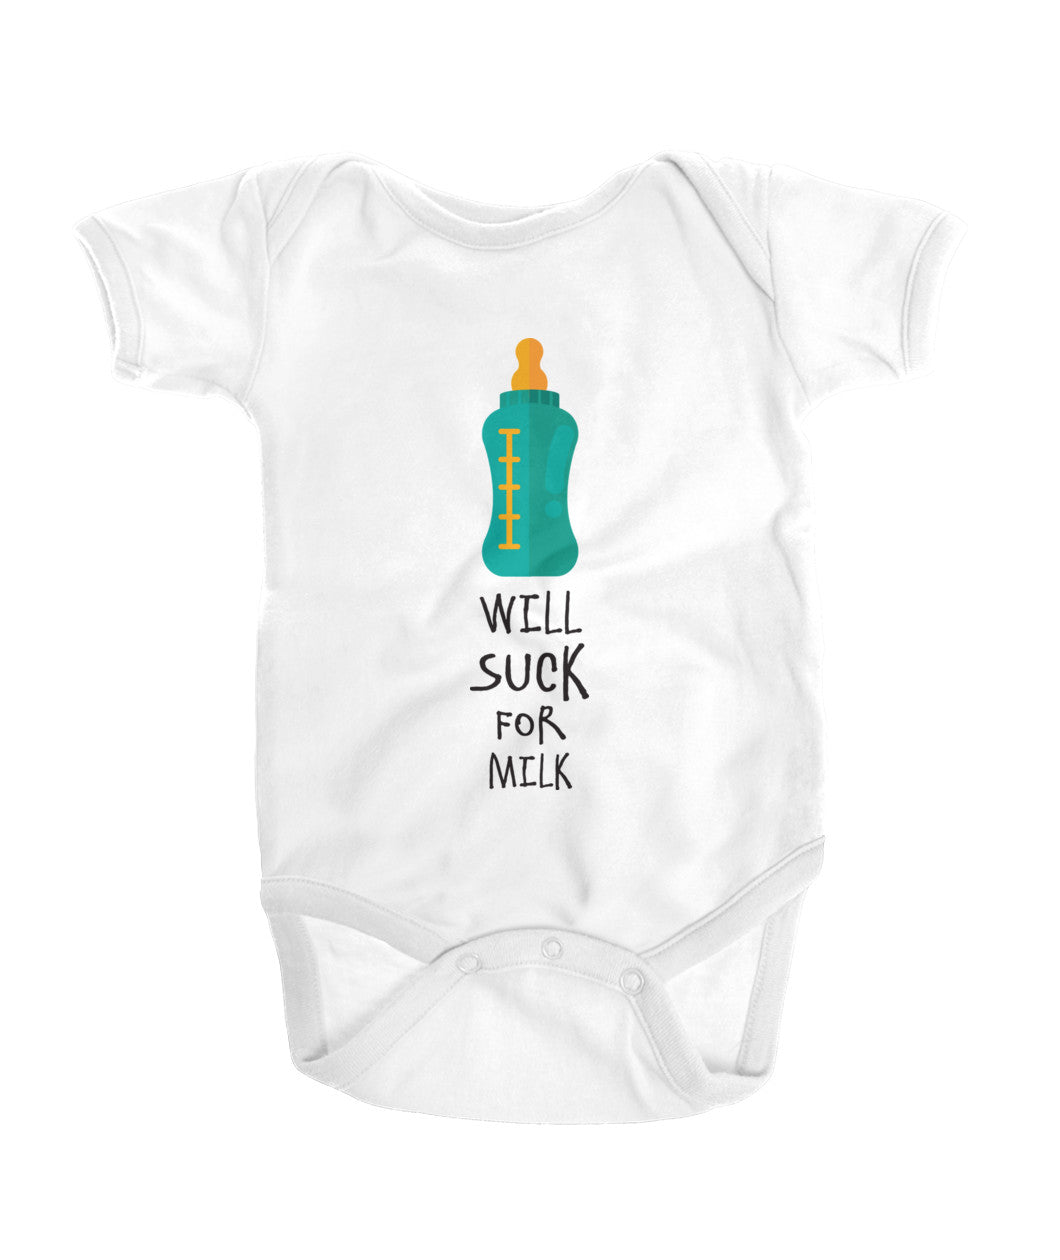 WILL SUCK FOR MILK ONESIE